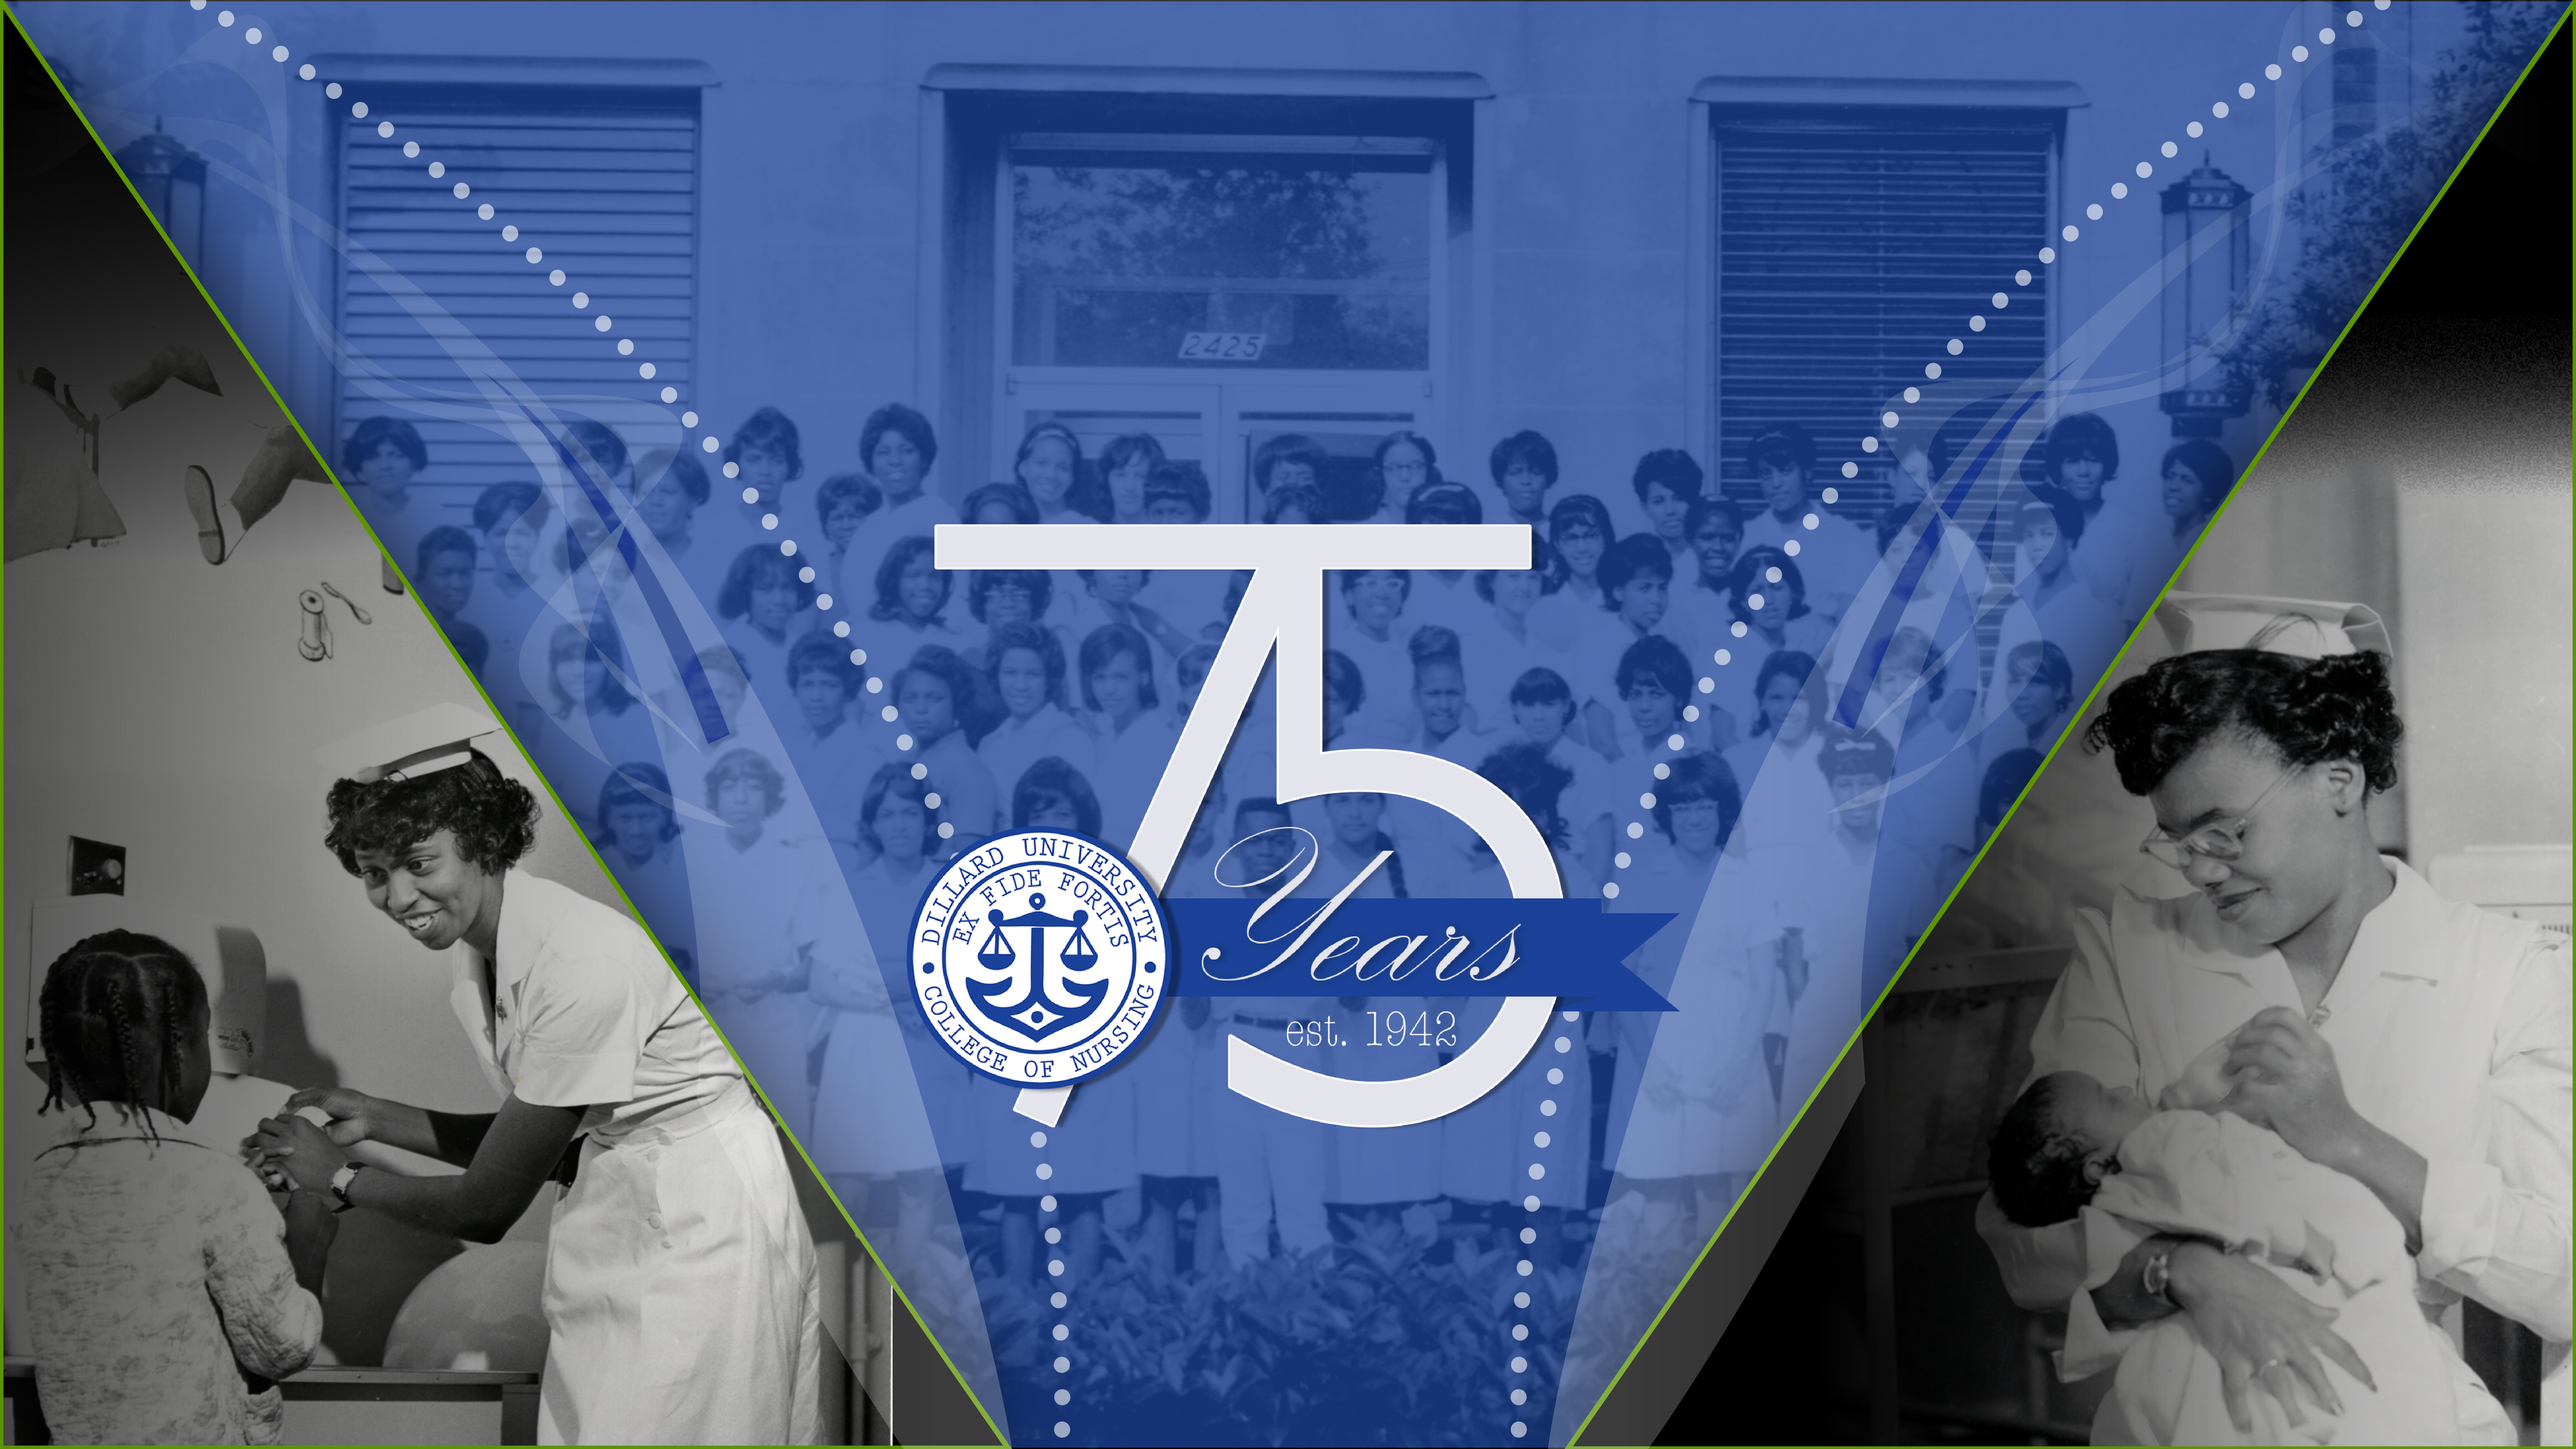 75 years of Nursing ad